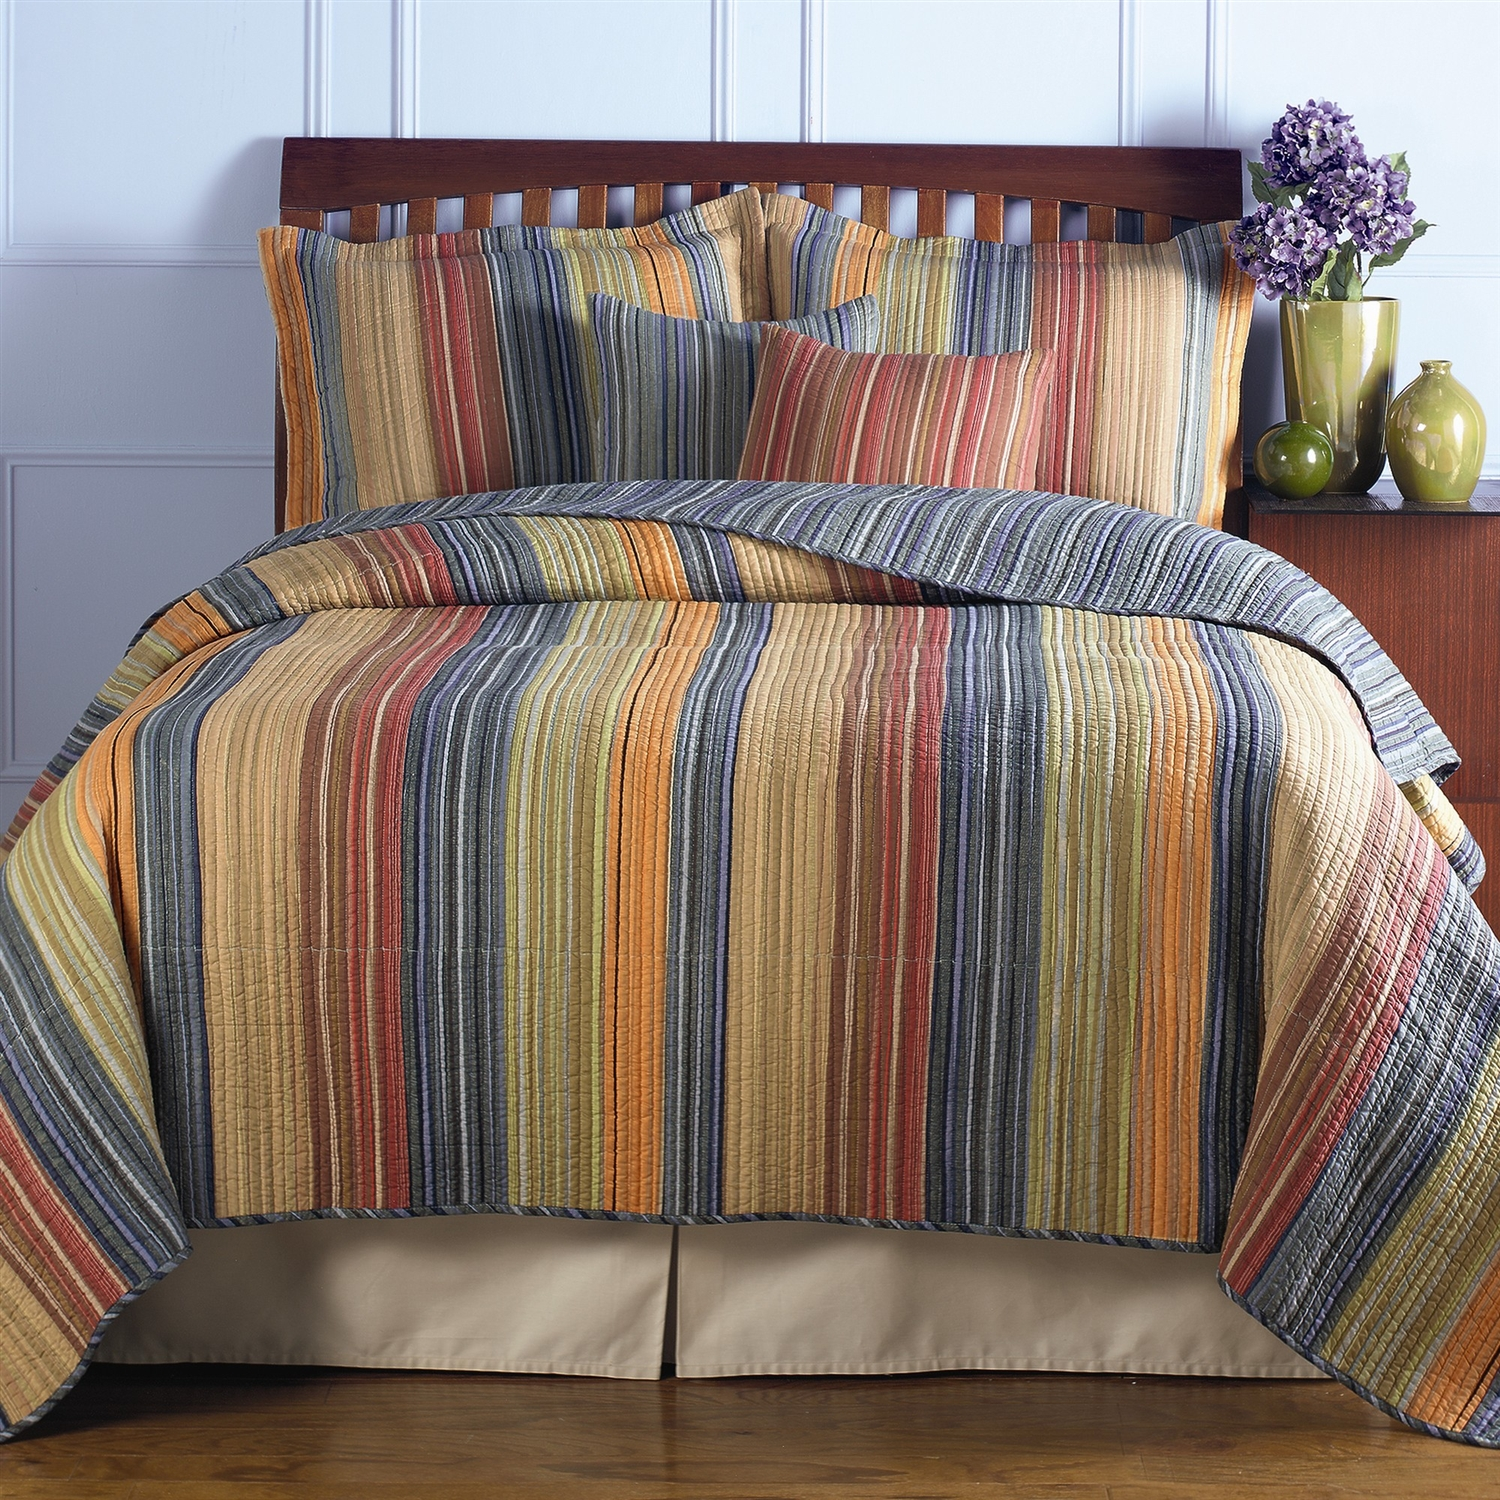 Full / Queen 100% Cotton Quilt Set with Red Orange Blue Brown Stripes: GHKBFQ89241 : This Full / Queen 100% Cotton Quilt Set with Red Orange Blue Brown Stripes would be a great addition to your home. It is machine washable and made of 100% cotton. Twin set includes 1 twin quilt, 1 sham and 2 decorative pillows; Full/Queen and King set includes 1 quilt, 2 shams and 2 decorative pillows; King set comes with 2 king-sized shams; Shell: 100% Cotton; Pillow filling: Spot clean; Oversized for better mattress coverage; Intensively quilted for style and durability; Reverses to a coordinating stripe; Channel quilting provides a rich surface texture; With a broad brushstroke of tasteful tones to compliment any bedroom theme; Chic and versatile with warm and cool colors; Product Type: Quilt/Coverlet set; Sham Material: Cotton; Reverse Side Material: Cotton.